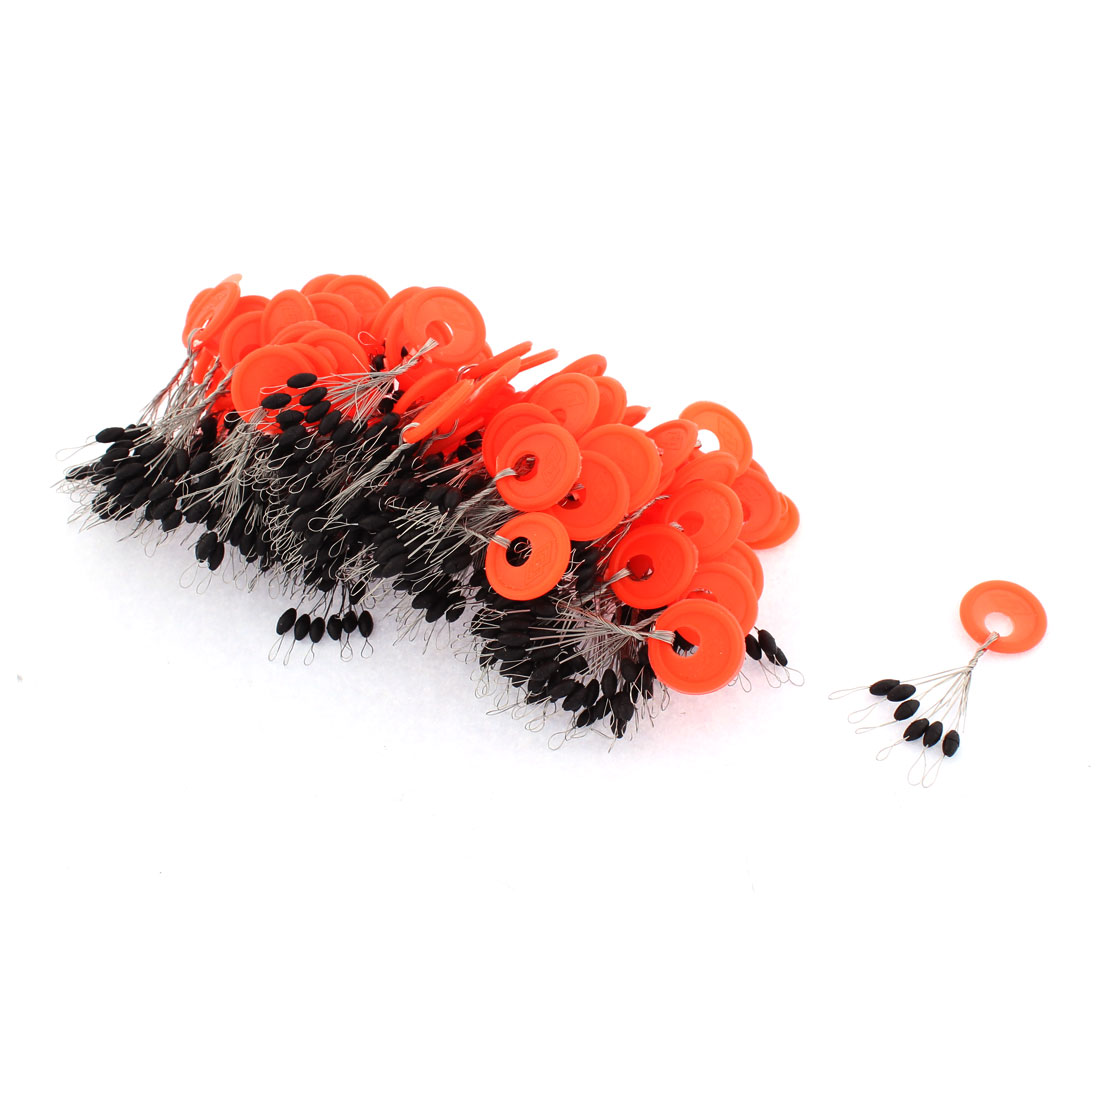 Unique Bargains 6 in 1 Beads Fishing Floaters Bobbers 5mm Long 100 Pcs by Unique-Bargains